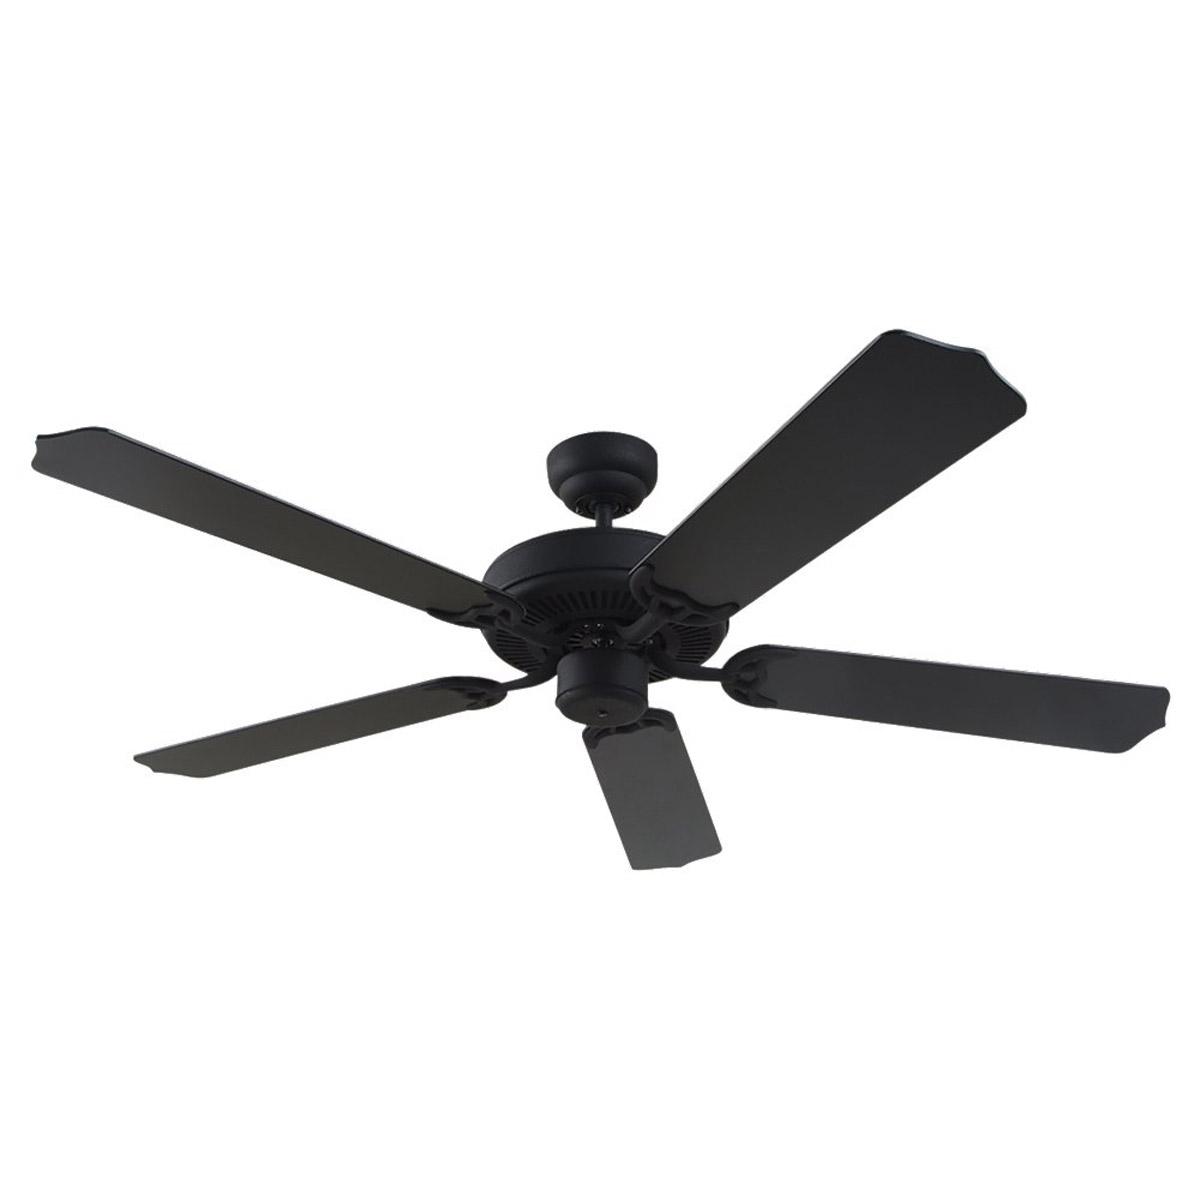 Sea Gull Lighting Quality Max & Energy Star 52 Inch Ceiling Fan in Blacksmith 15030-839